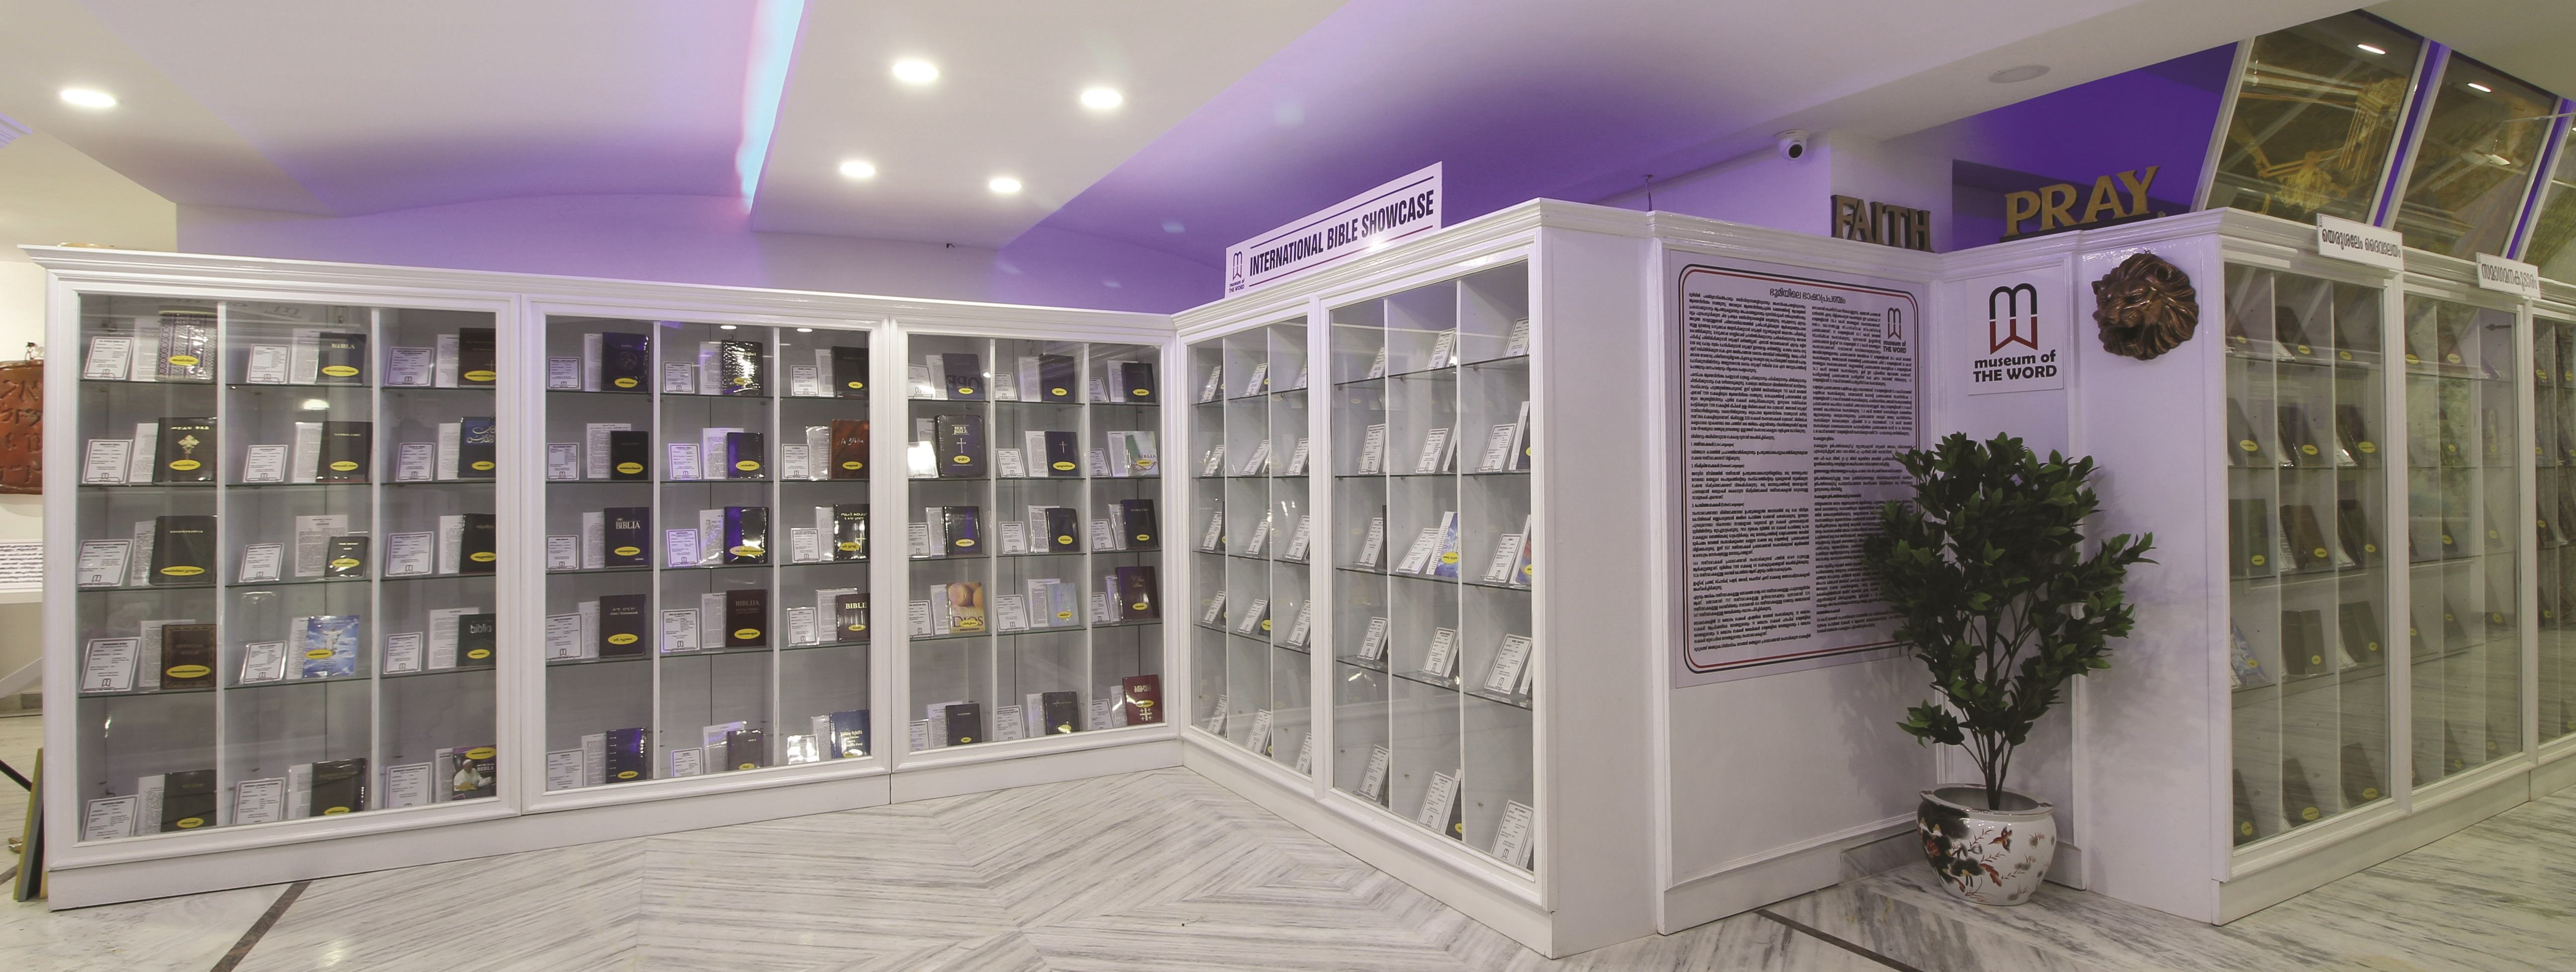 Step Into The World Of Languages And Scripture Translation. The  International Bible Showcase Exhibits Over 200 Bible Translations In  Different Languages, ...